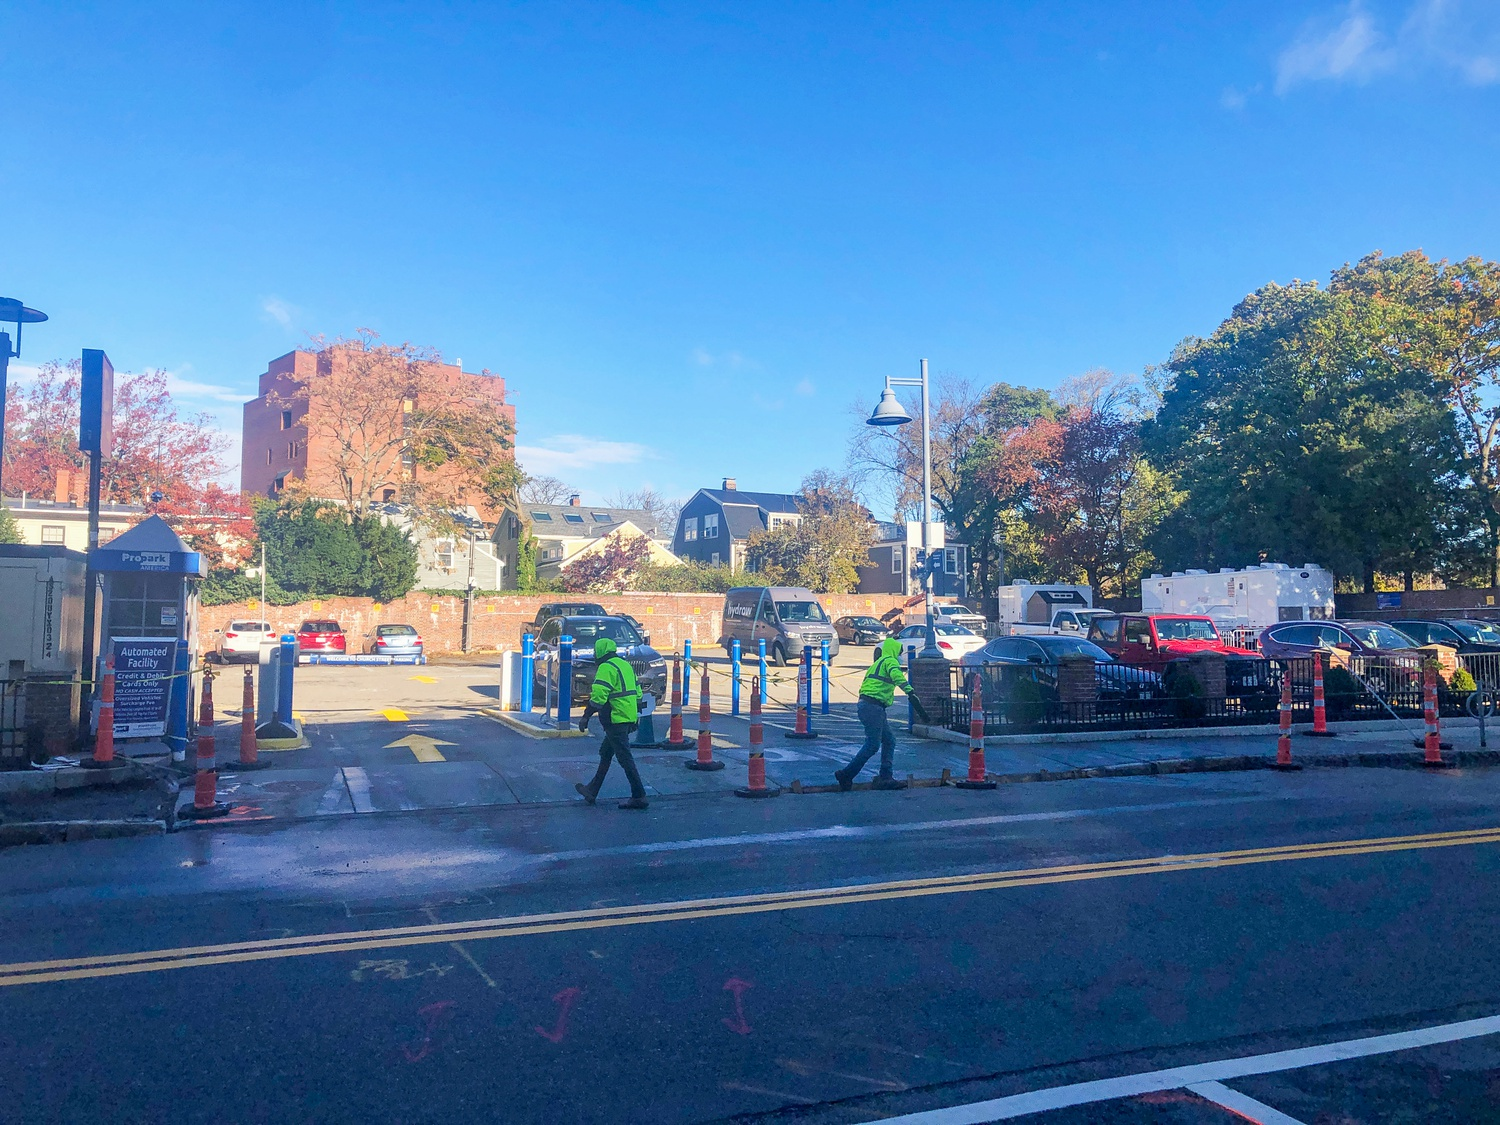 The City of Cambridge installed nine public showers in a Harvard Square parking lot in association with First Church Shelter.